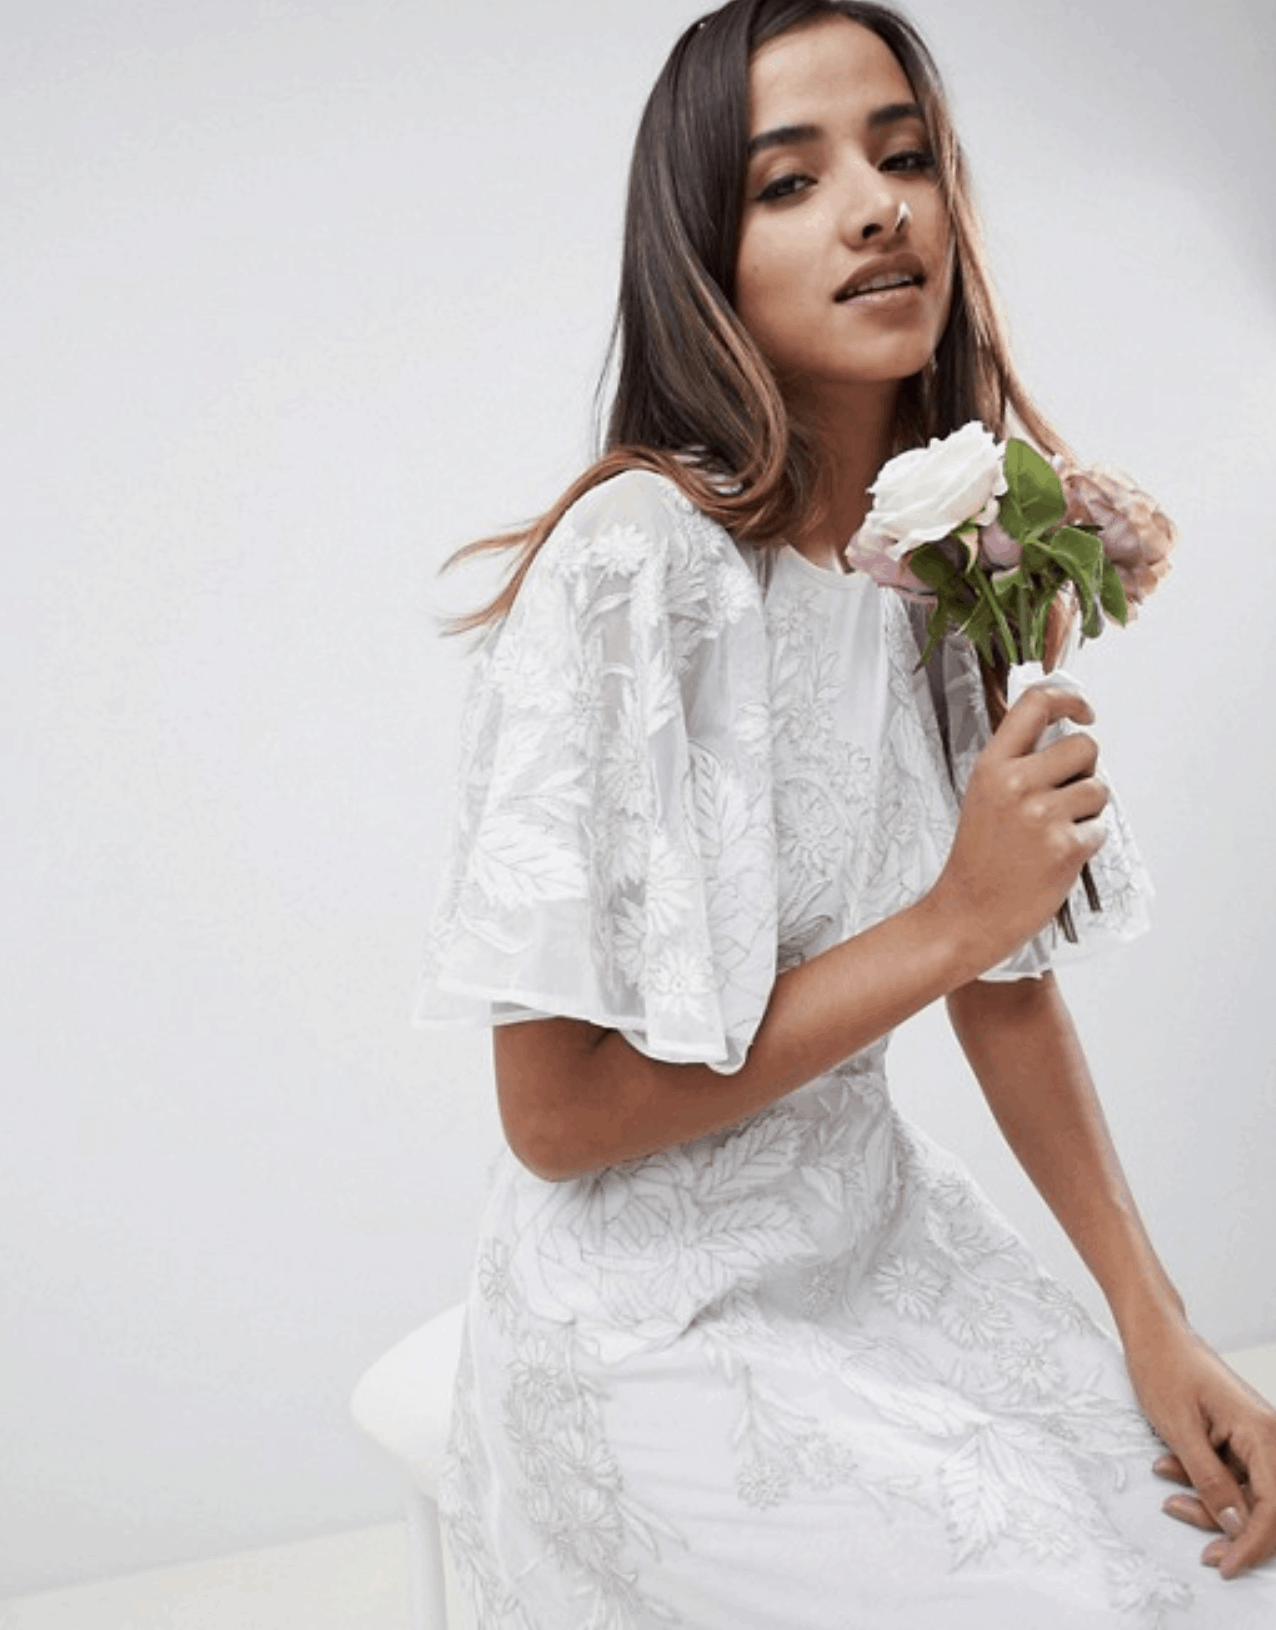 Cheap Affordable Bridal Gowns and Wedding Dresses ASOS Edition Floral Applique Wedding Dress